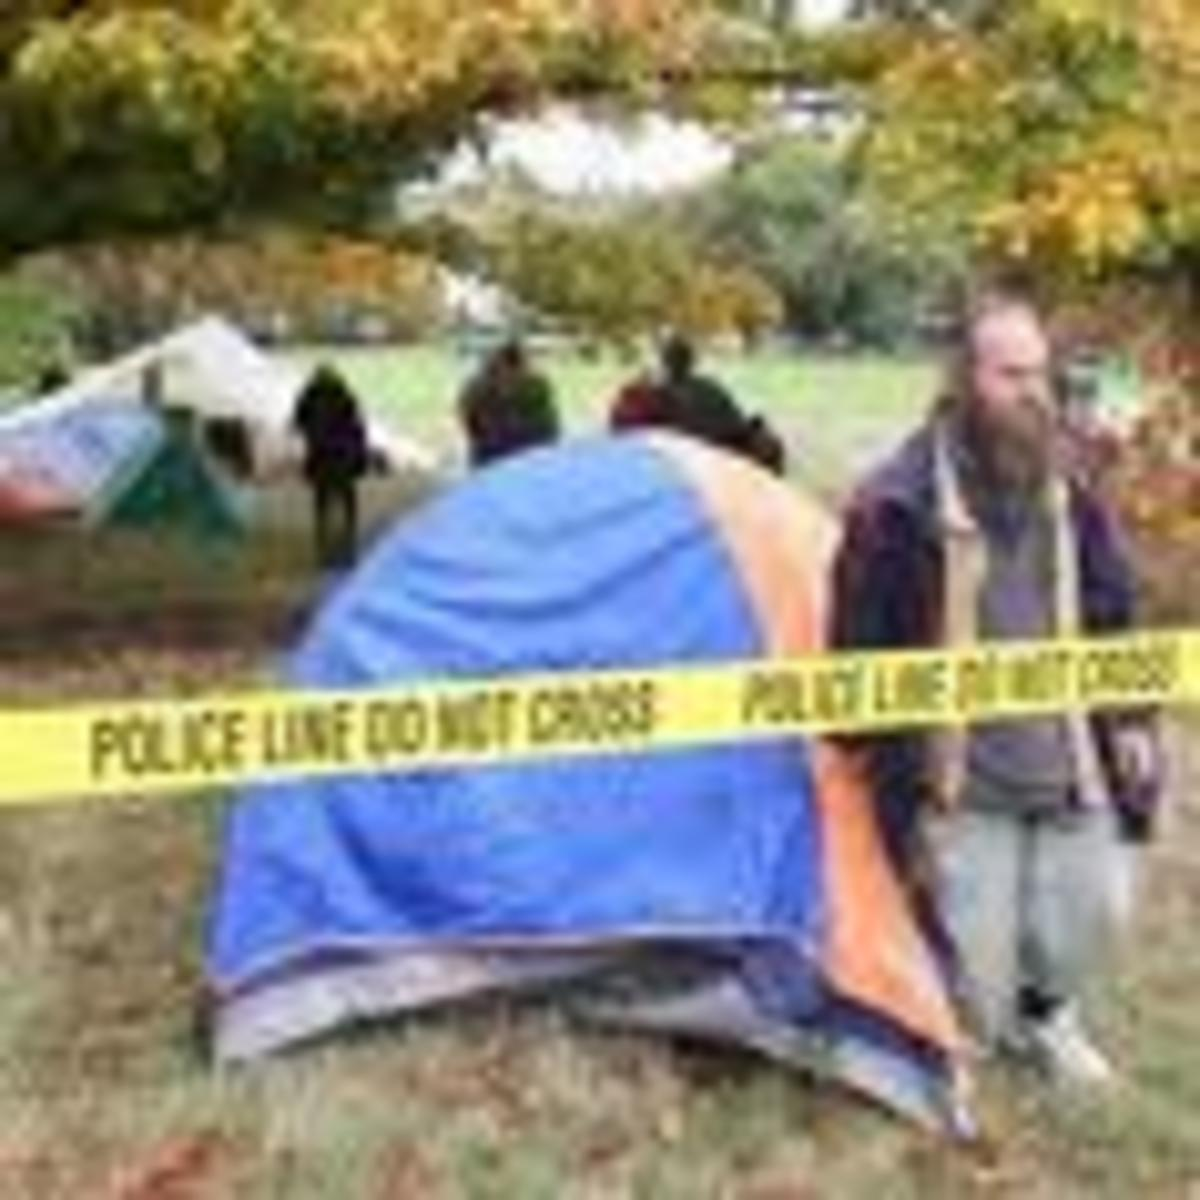 Background Checks Required to be Homeless?